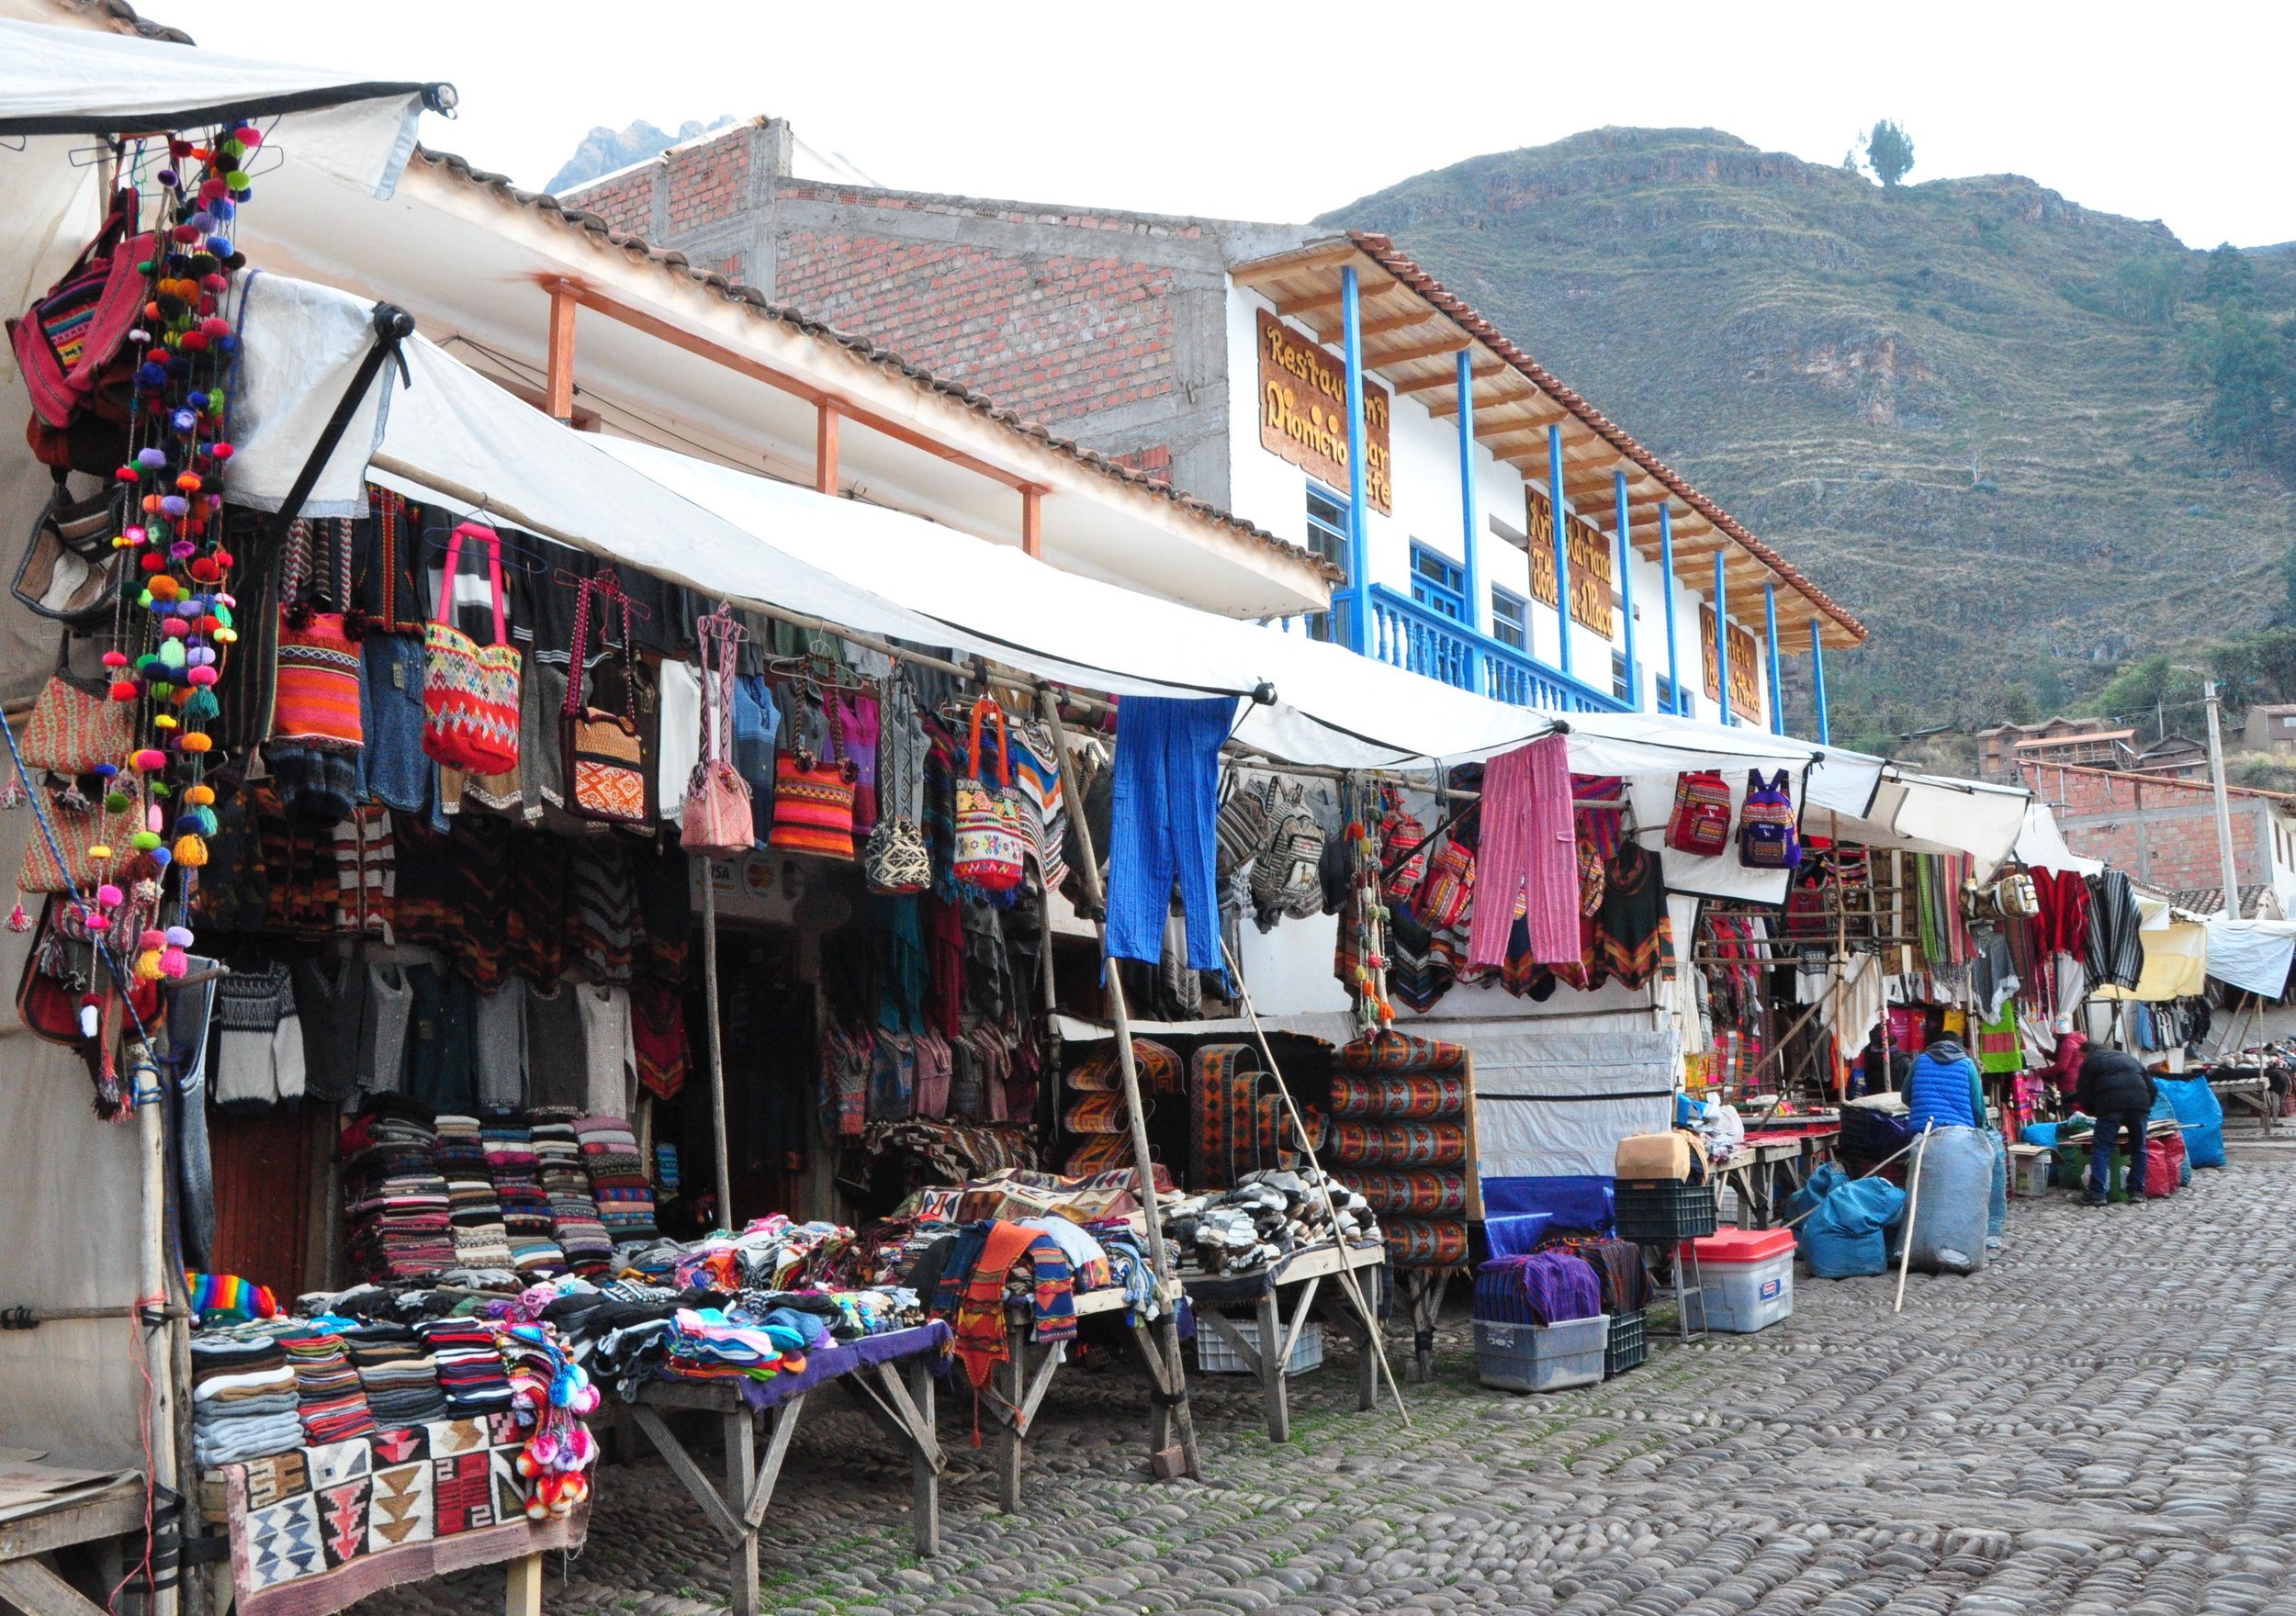 Market vendors setting up for the day